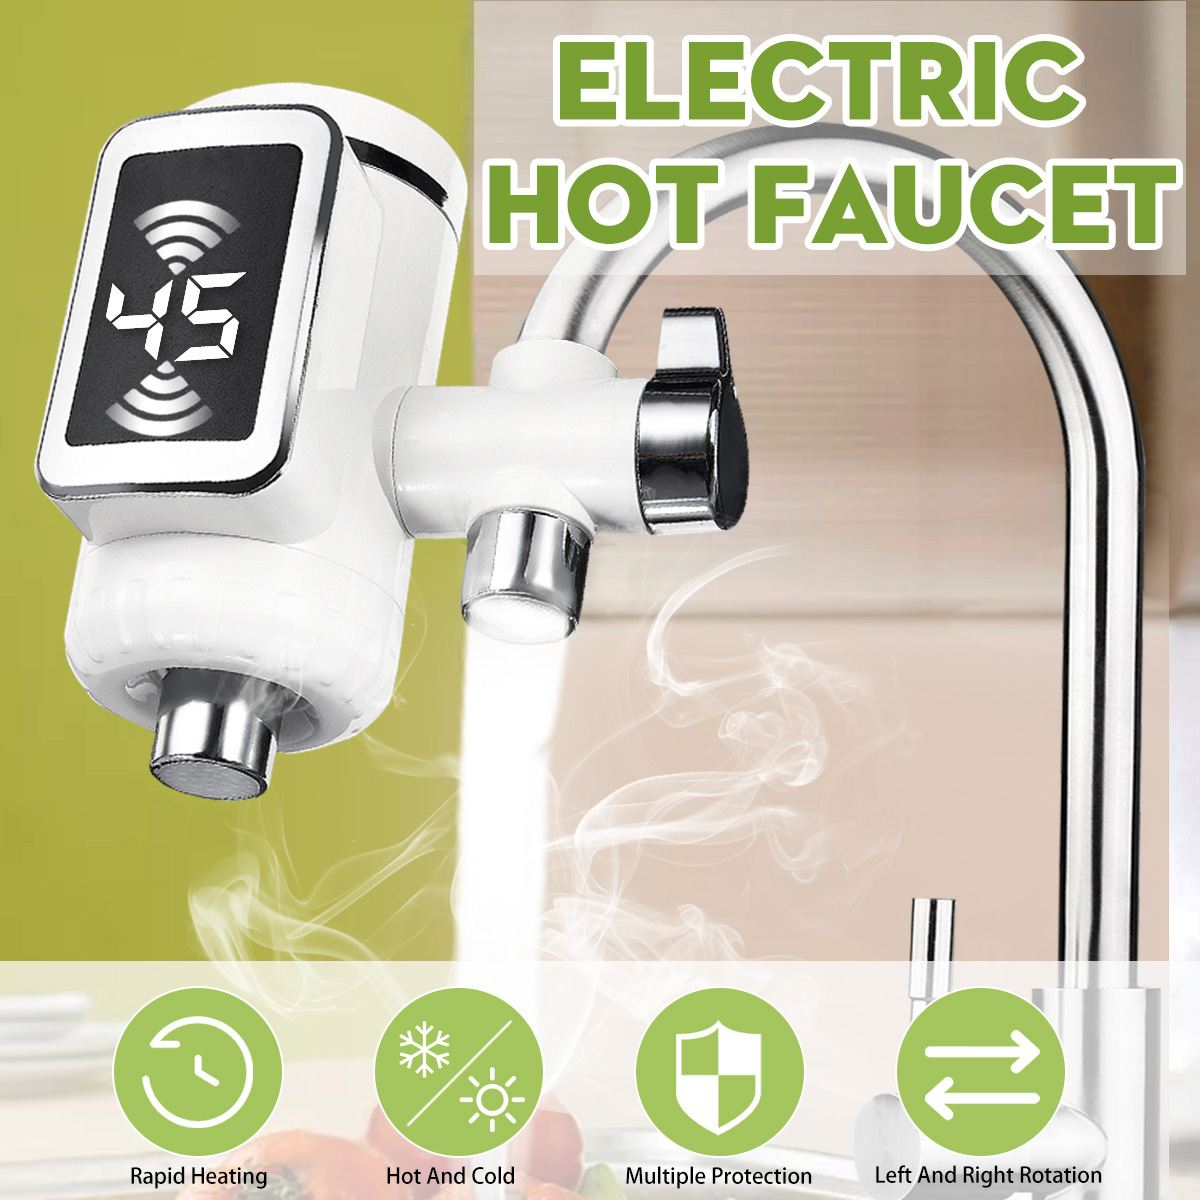 Electric Hot Faucet Water Heater Kitchen Cold Heating Faucet Tankless Digital Instantaneous Water Heater Water Tap with Adapter image